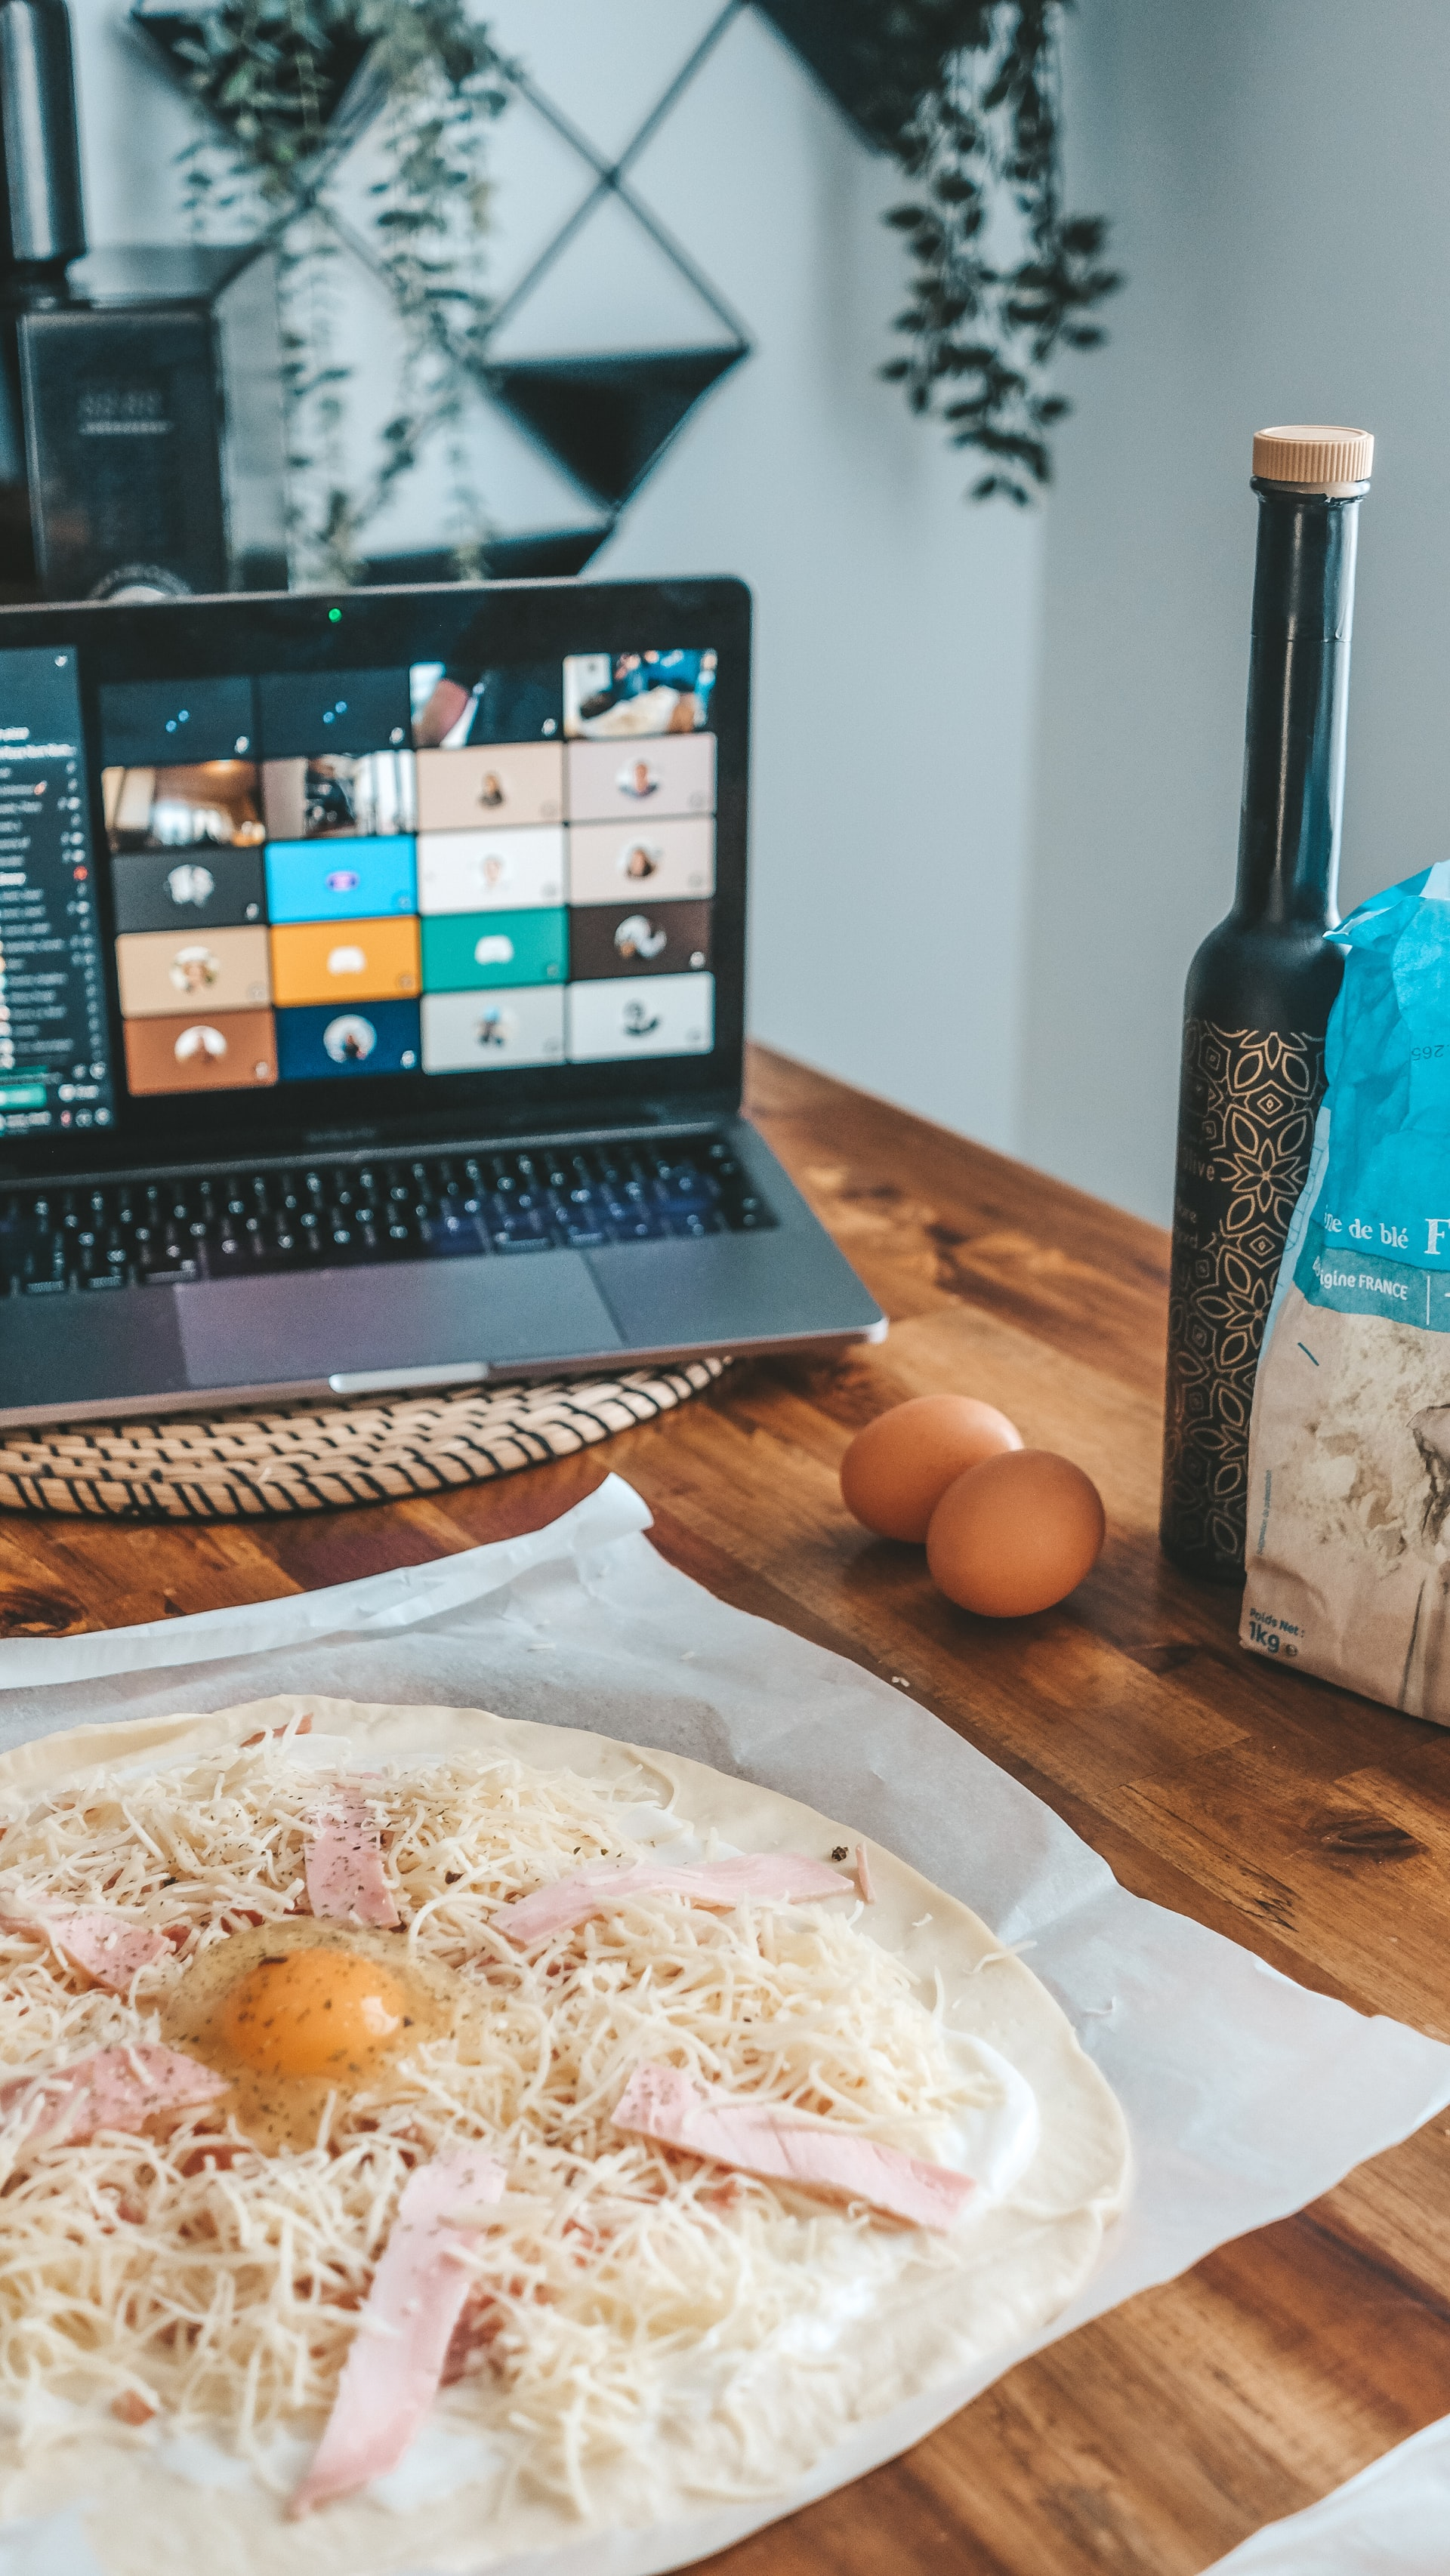 Laptop in a kitchen environment